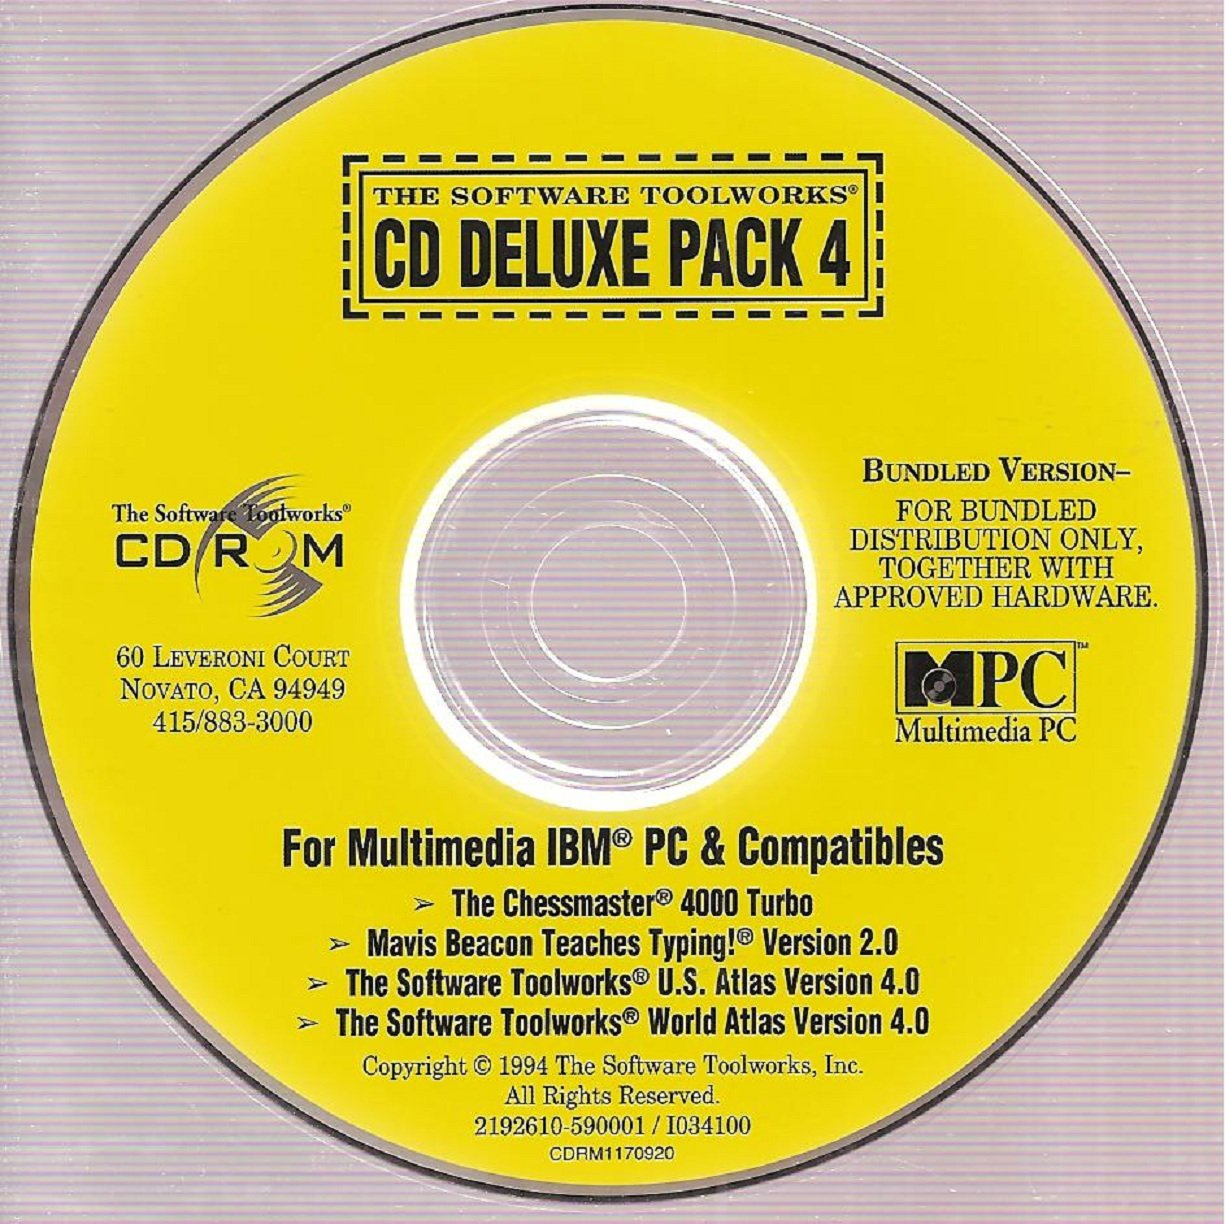 The Software Toolworks CD Deluxe Pack 4: The Chessmaster 4000 Turbo/ Mavis Beacon Teaches Typing Version 2.0/ U.S. Atlas Version 4.0/ World Atlas Version ...